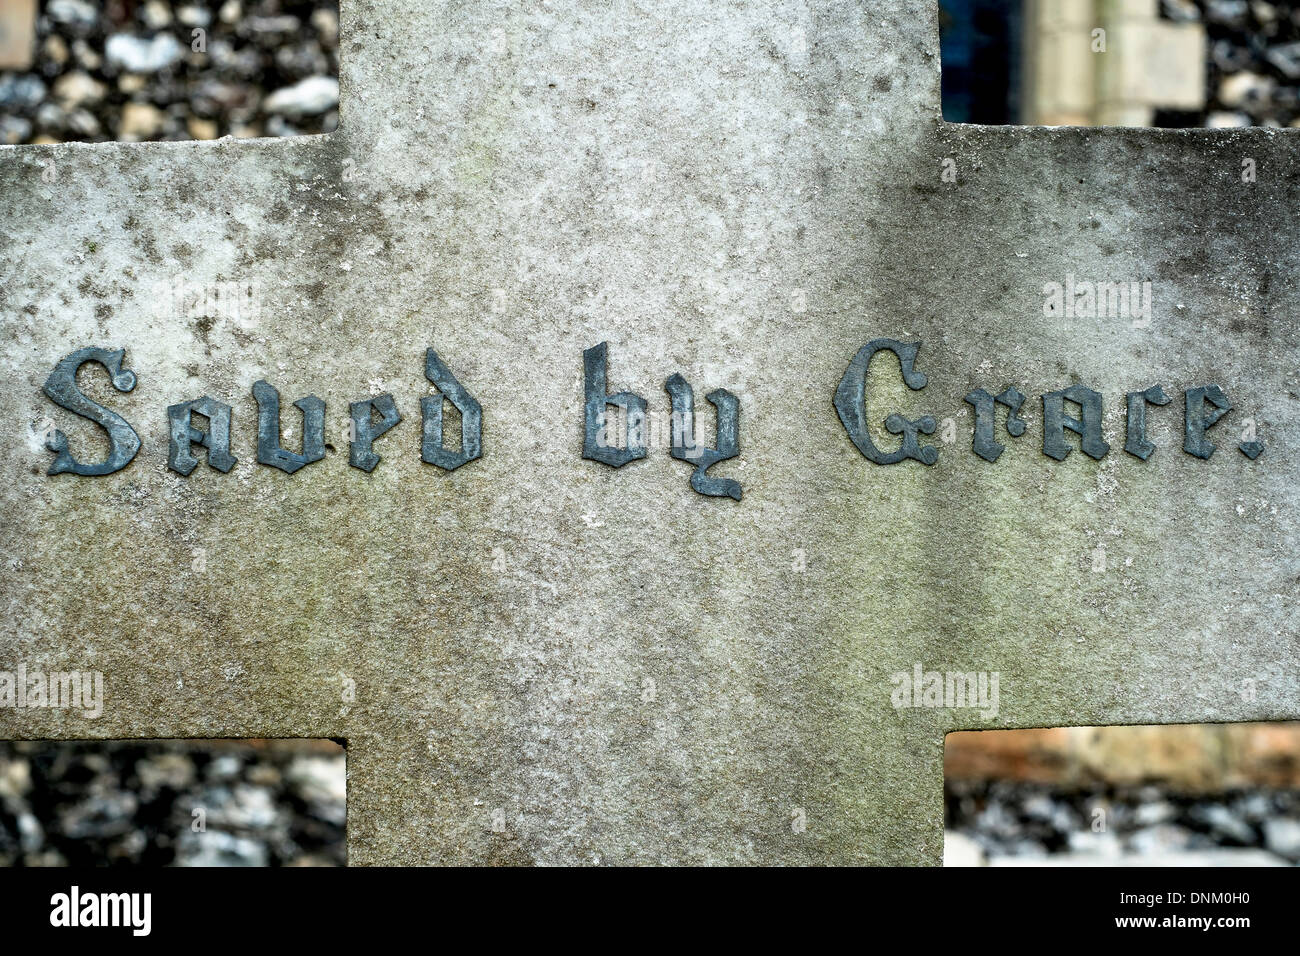 Saved by Grace headstone, Worthing. Picture by Julie Edwards - Stock Image